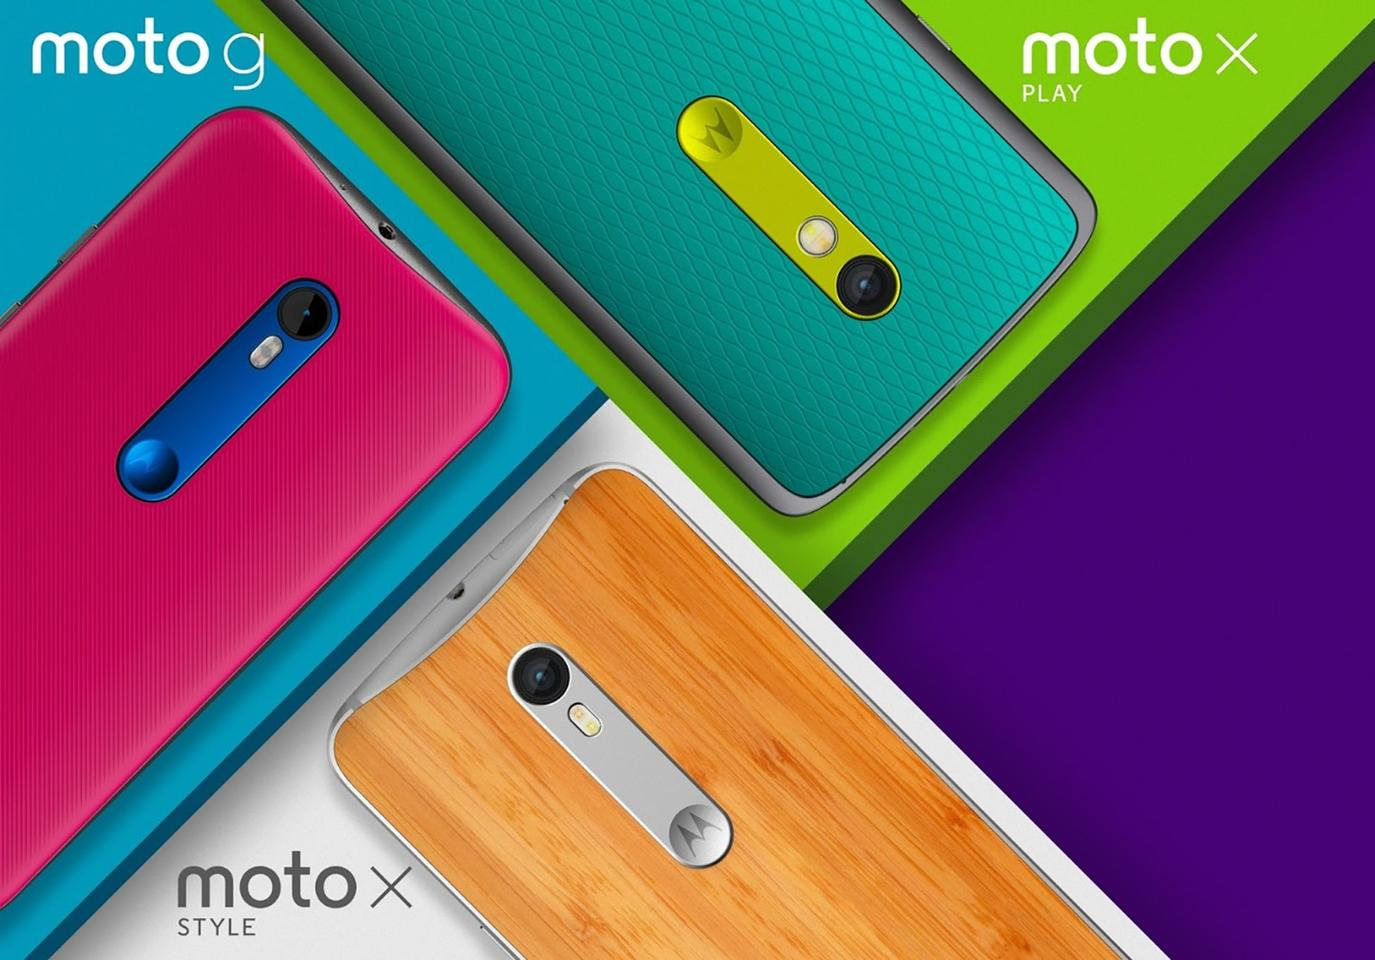 The Motorola smartphone line-up for 2015